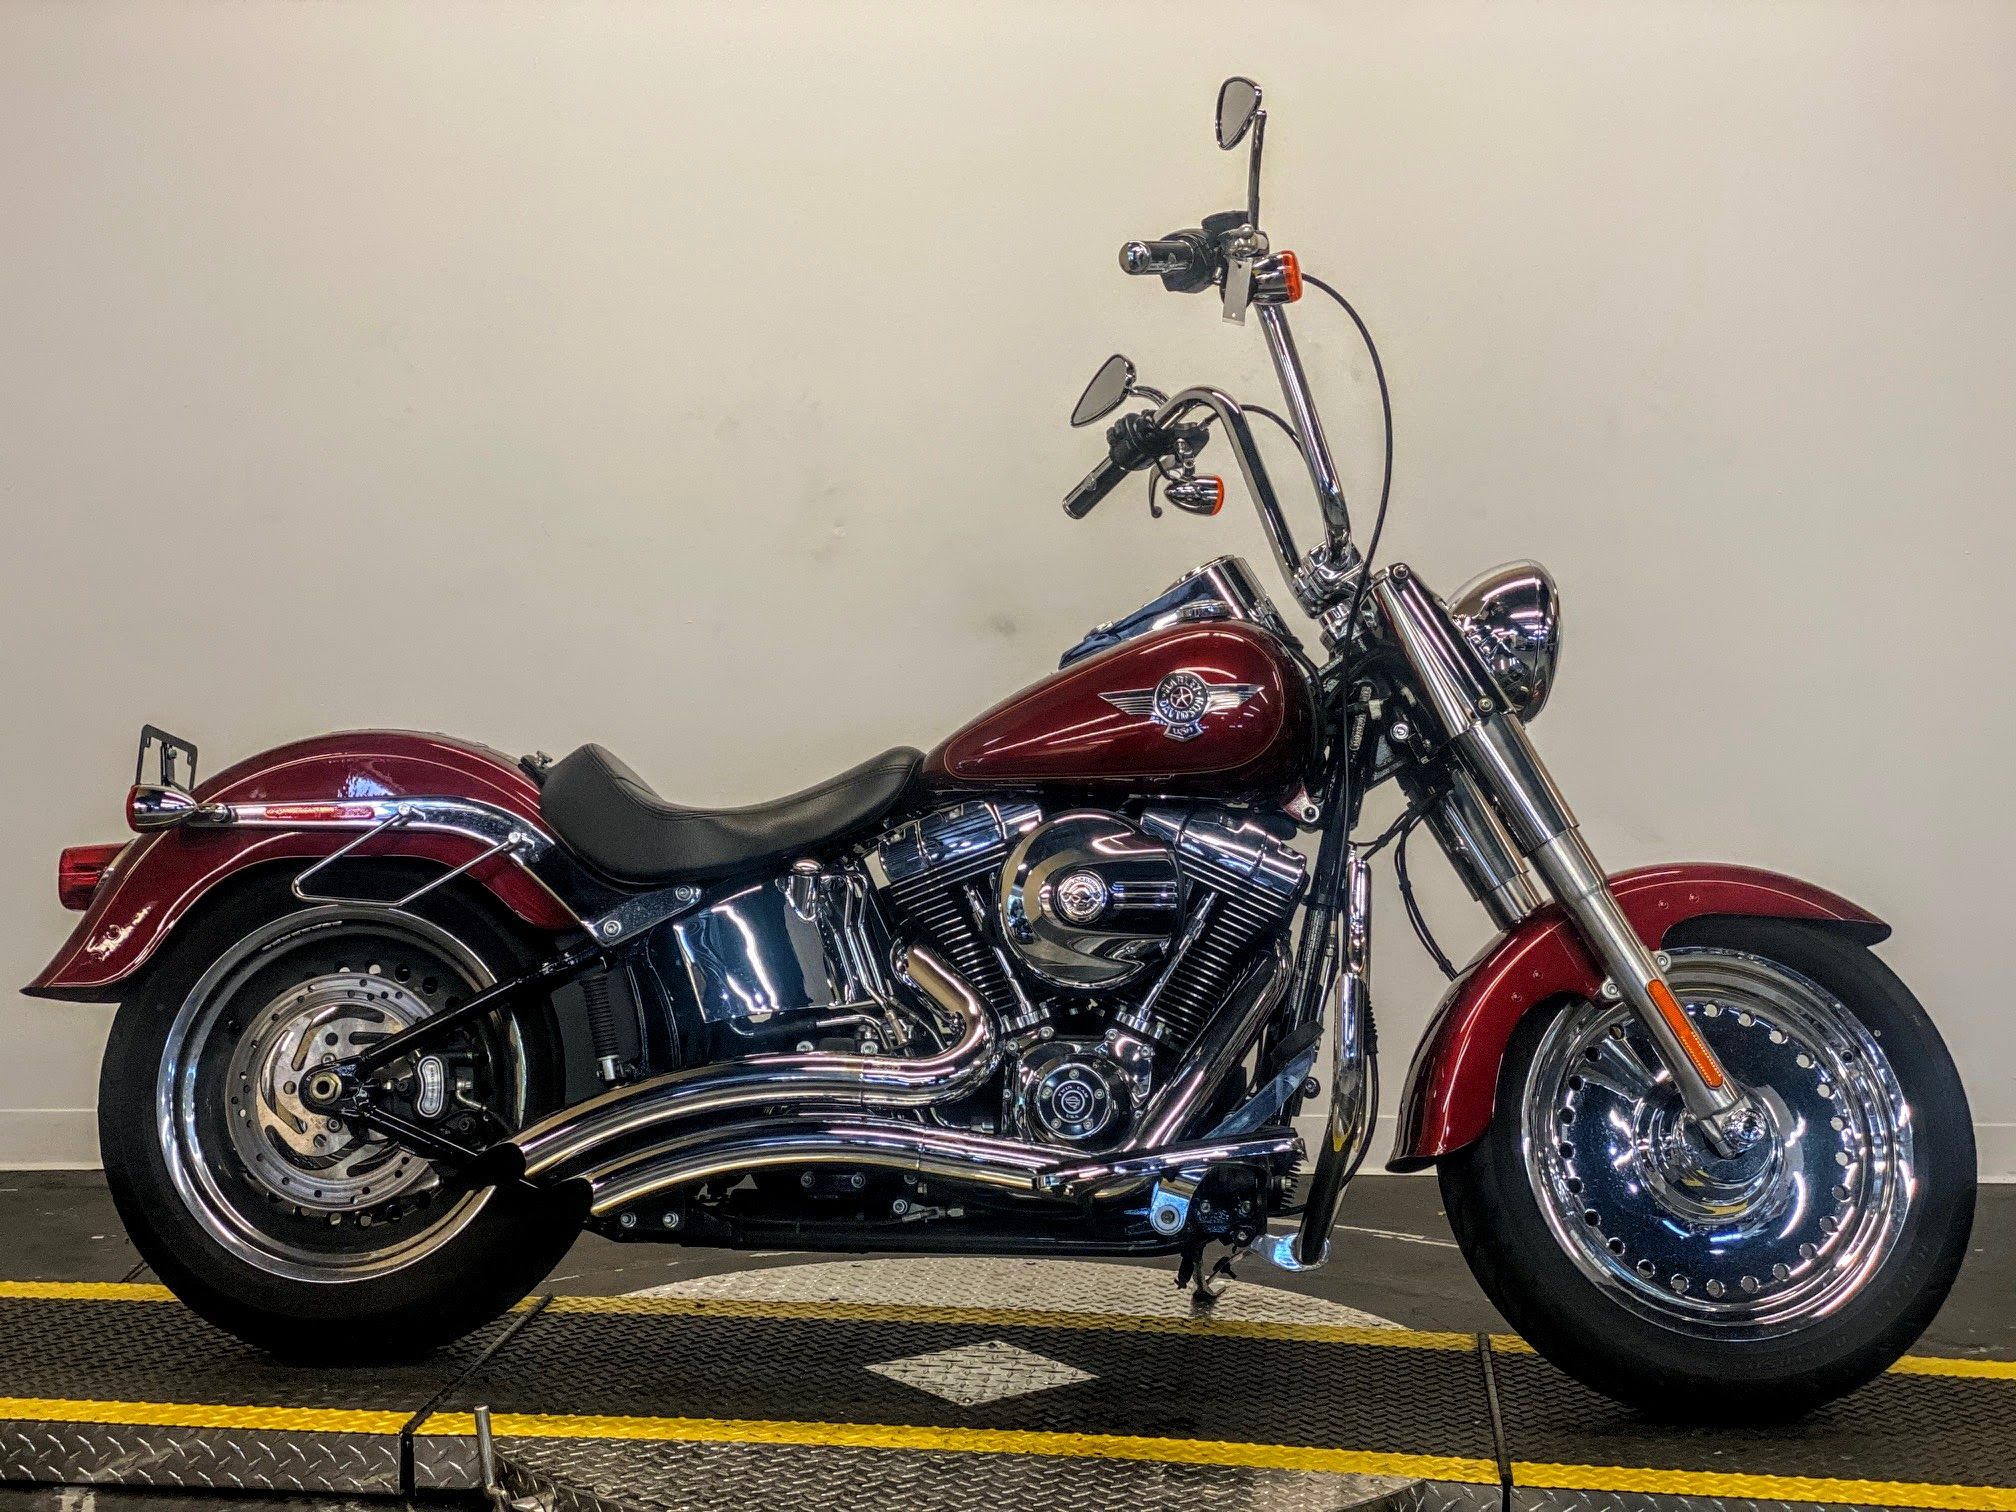 Pre-Owned 2017 Harley-Davidson Fat Boy FLSTF